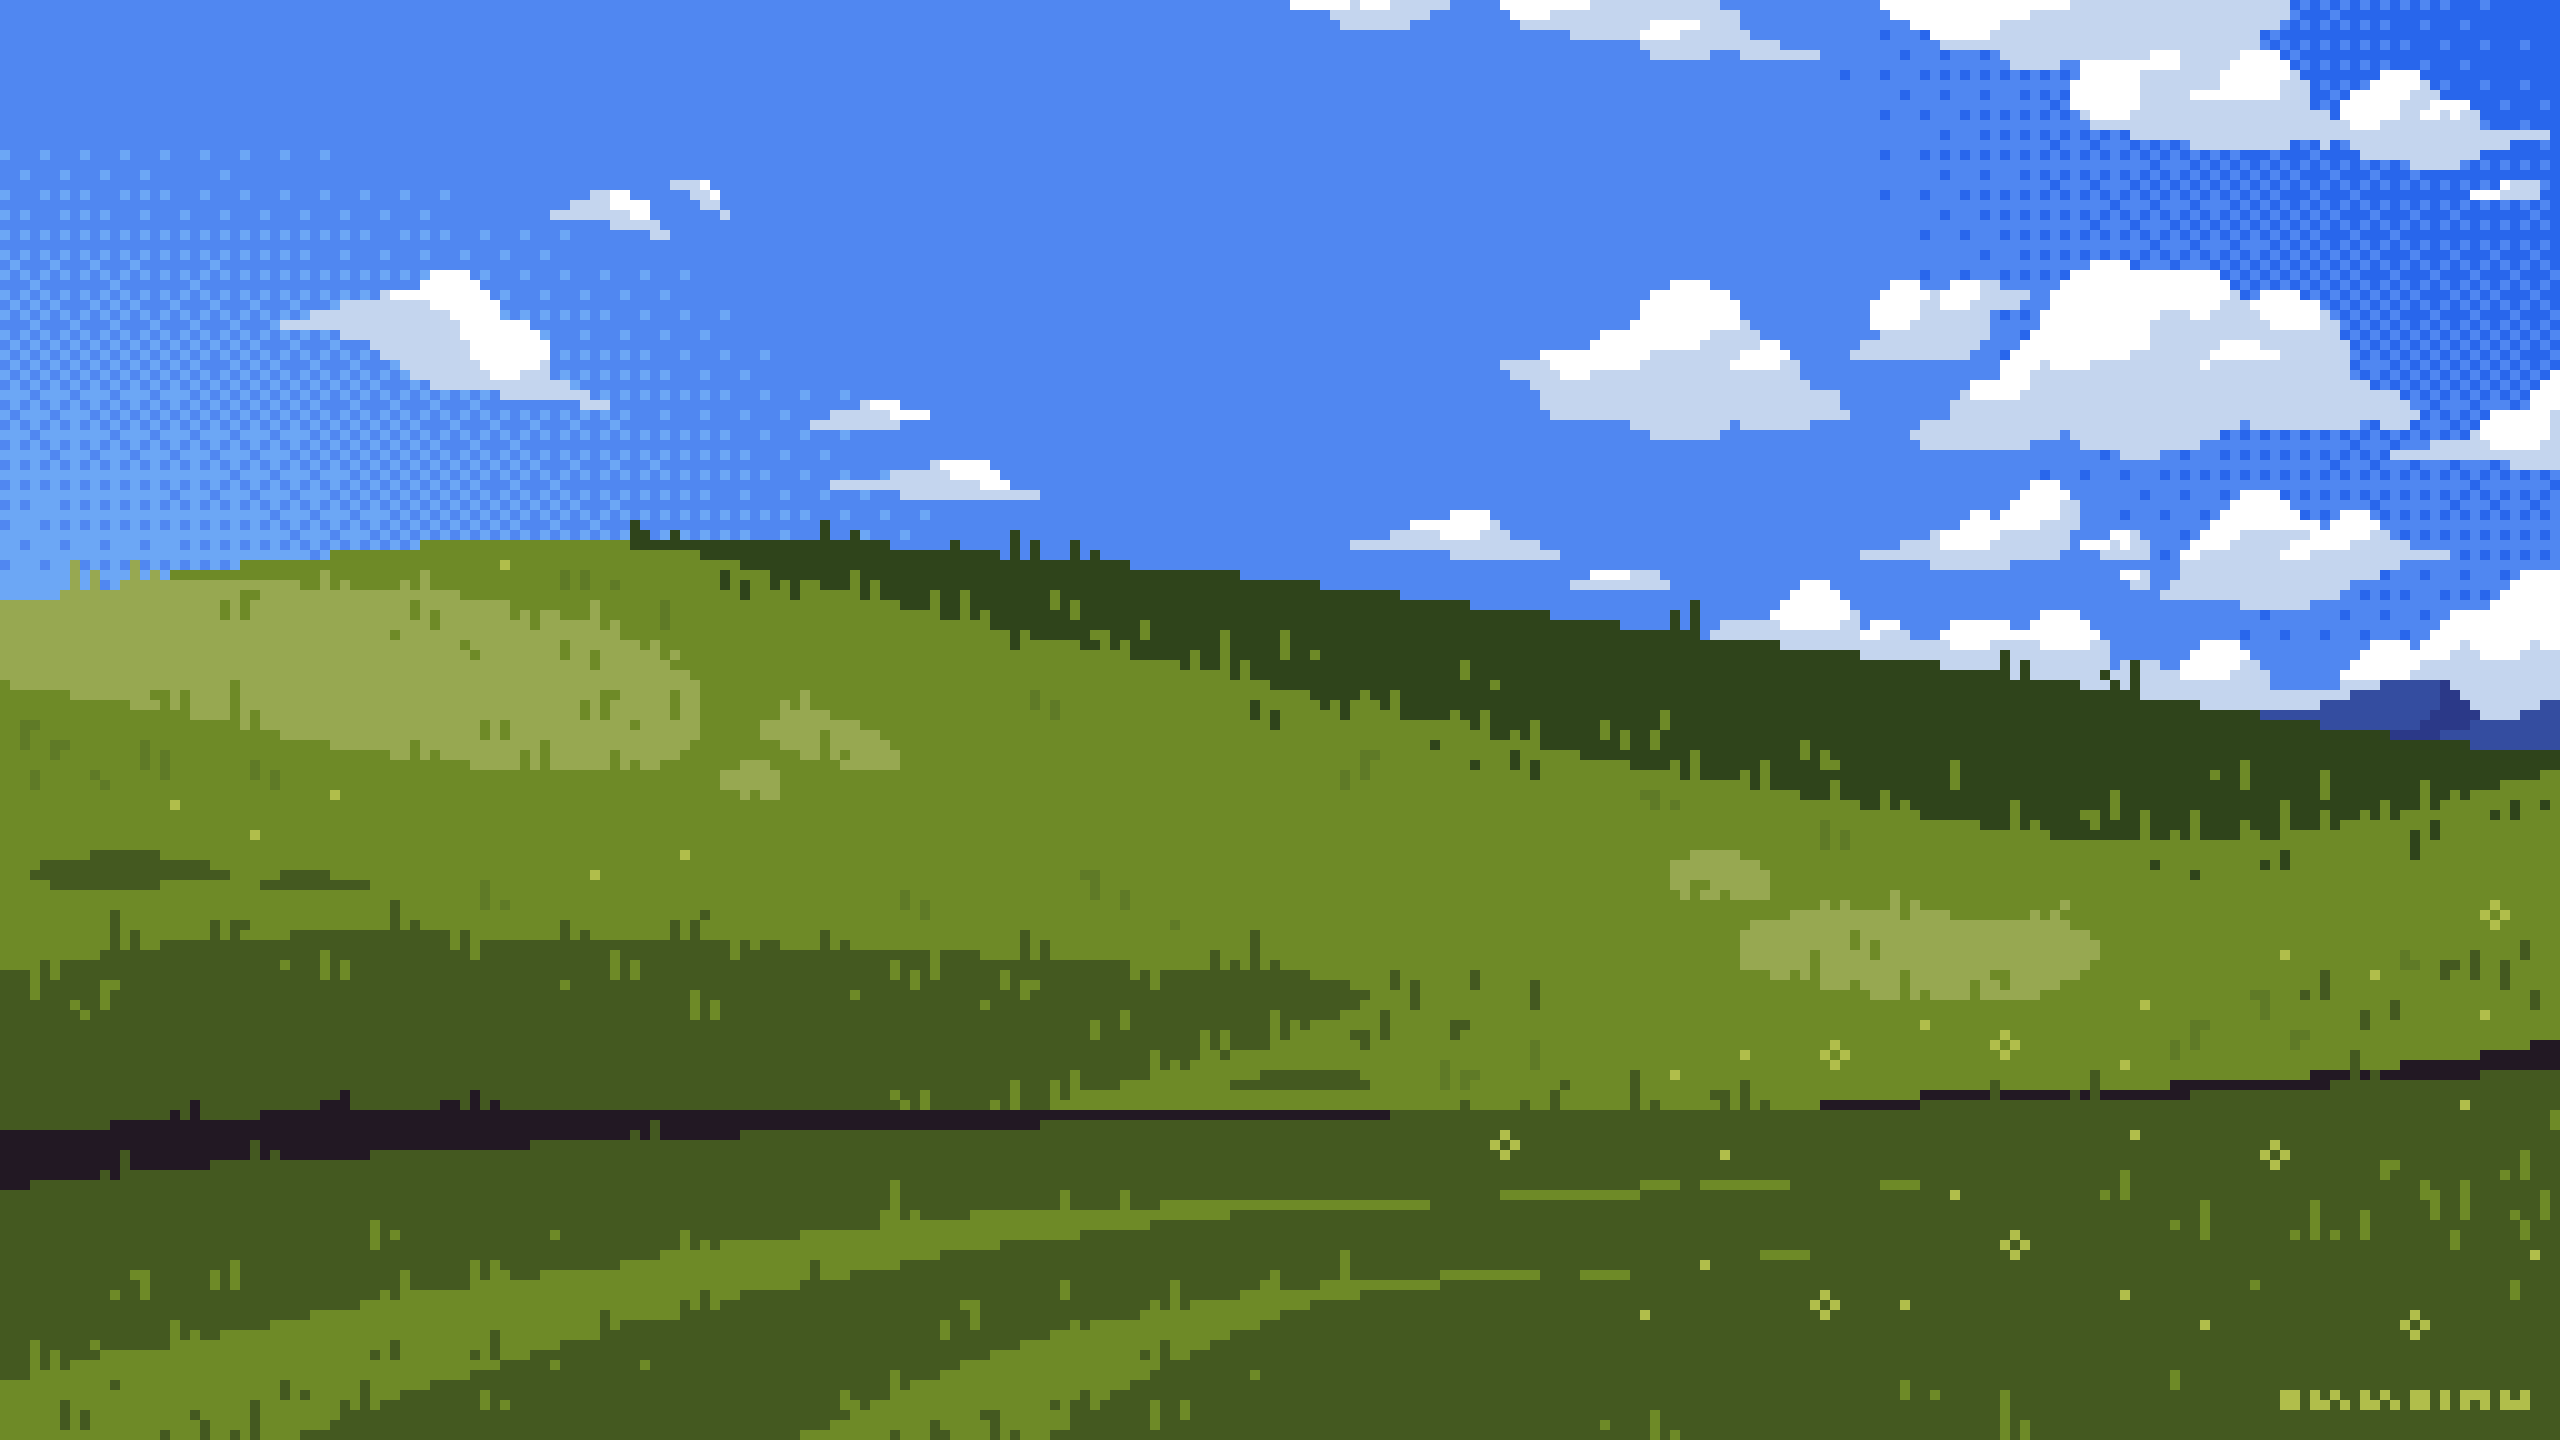 OC] Windows XP Wallpaper PixelArt 2560x1440